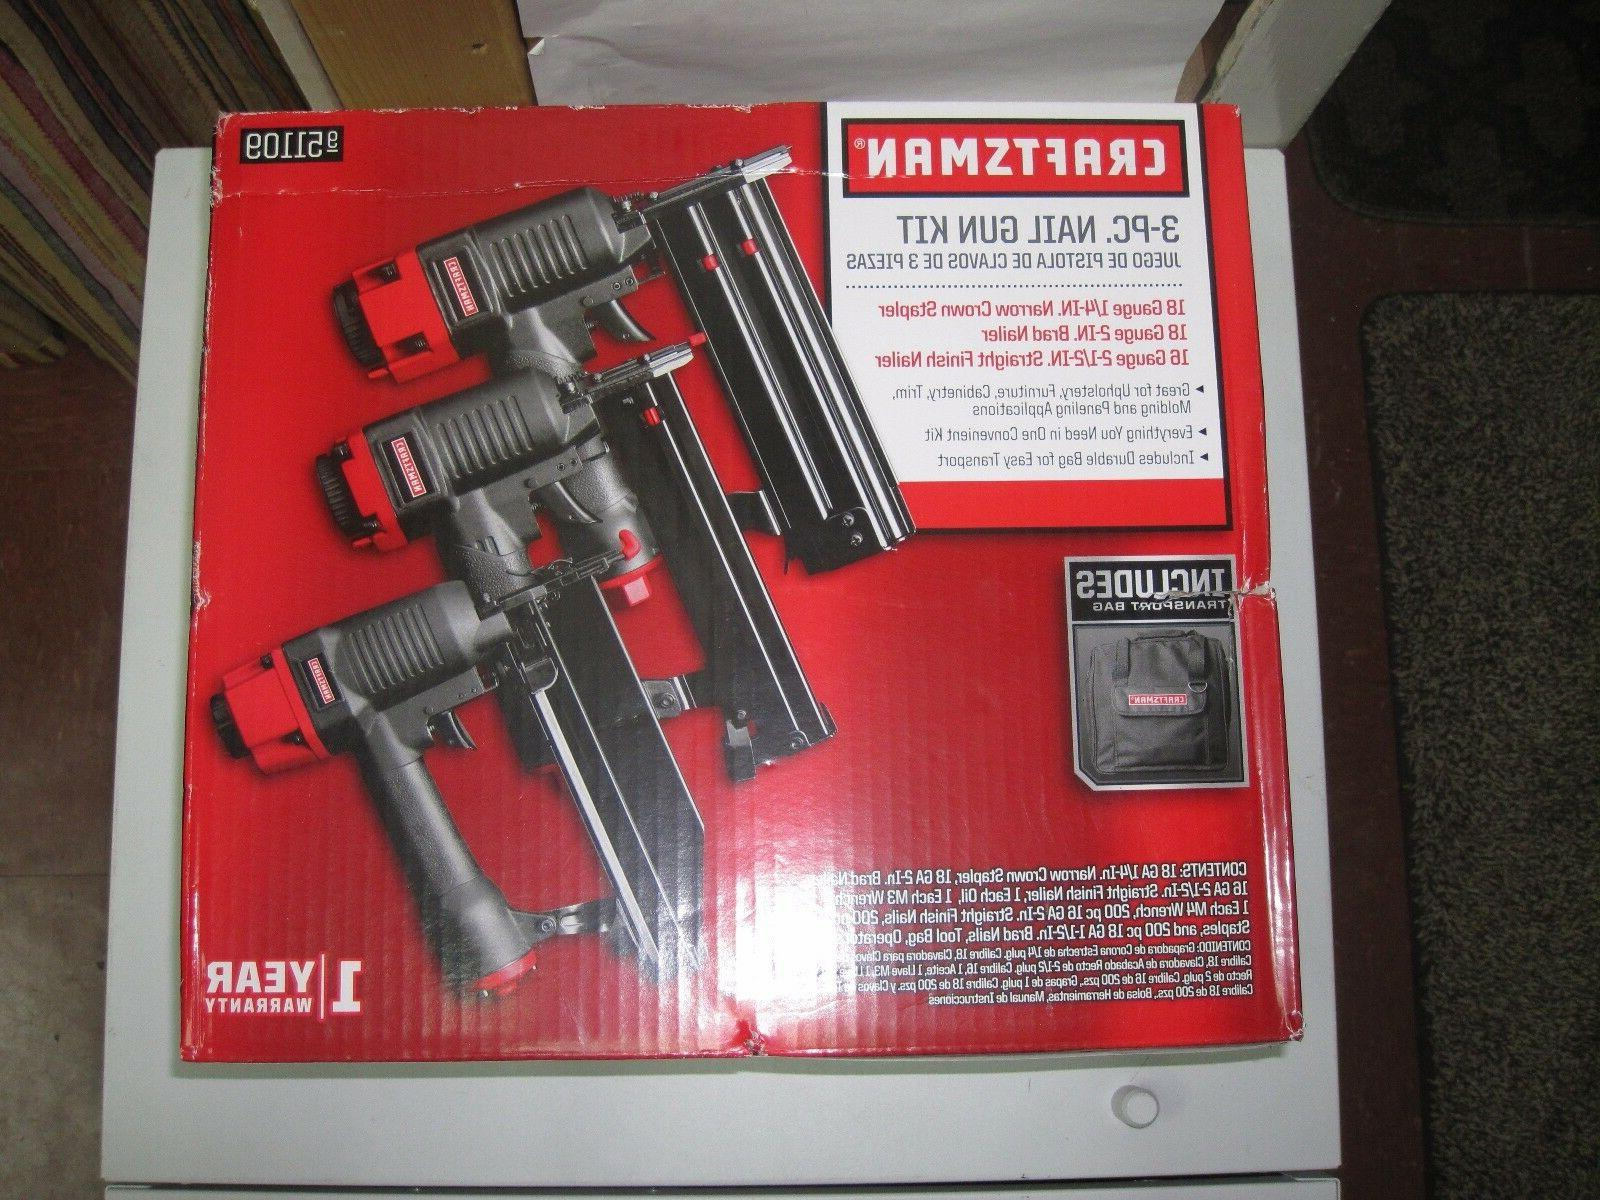 Craftsman pc Gun Kit 951109 Stapler, Finish Nailer